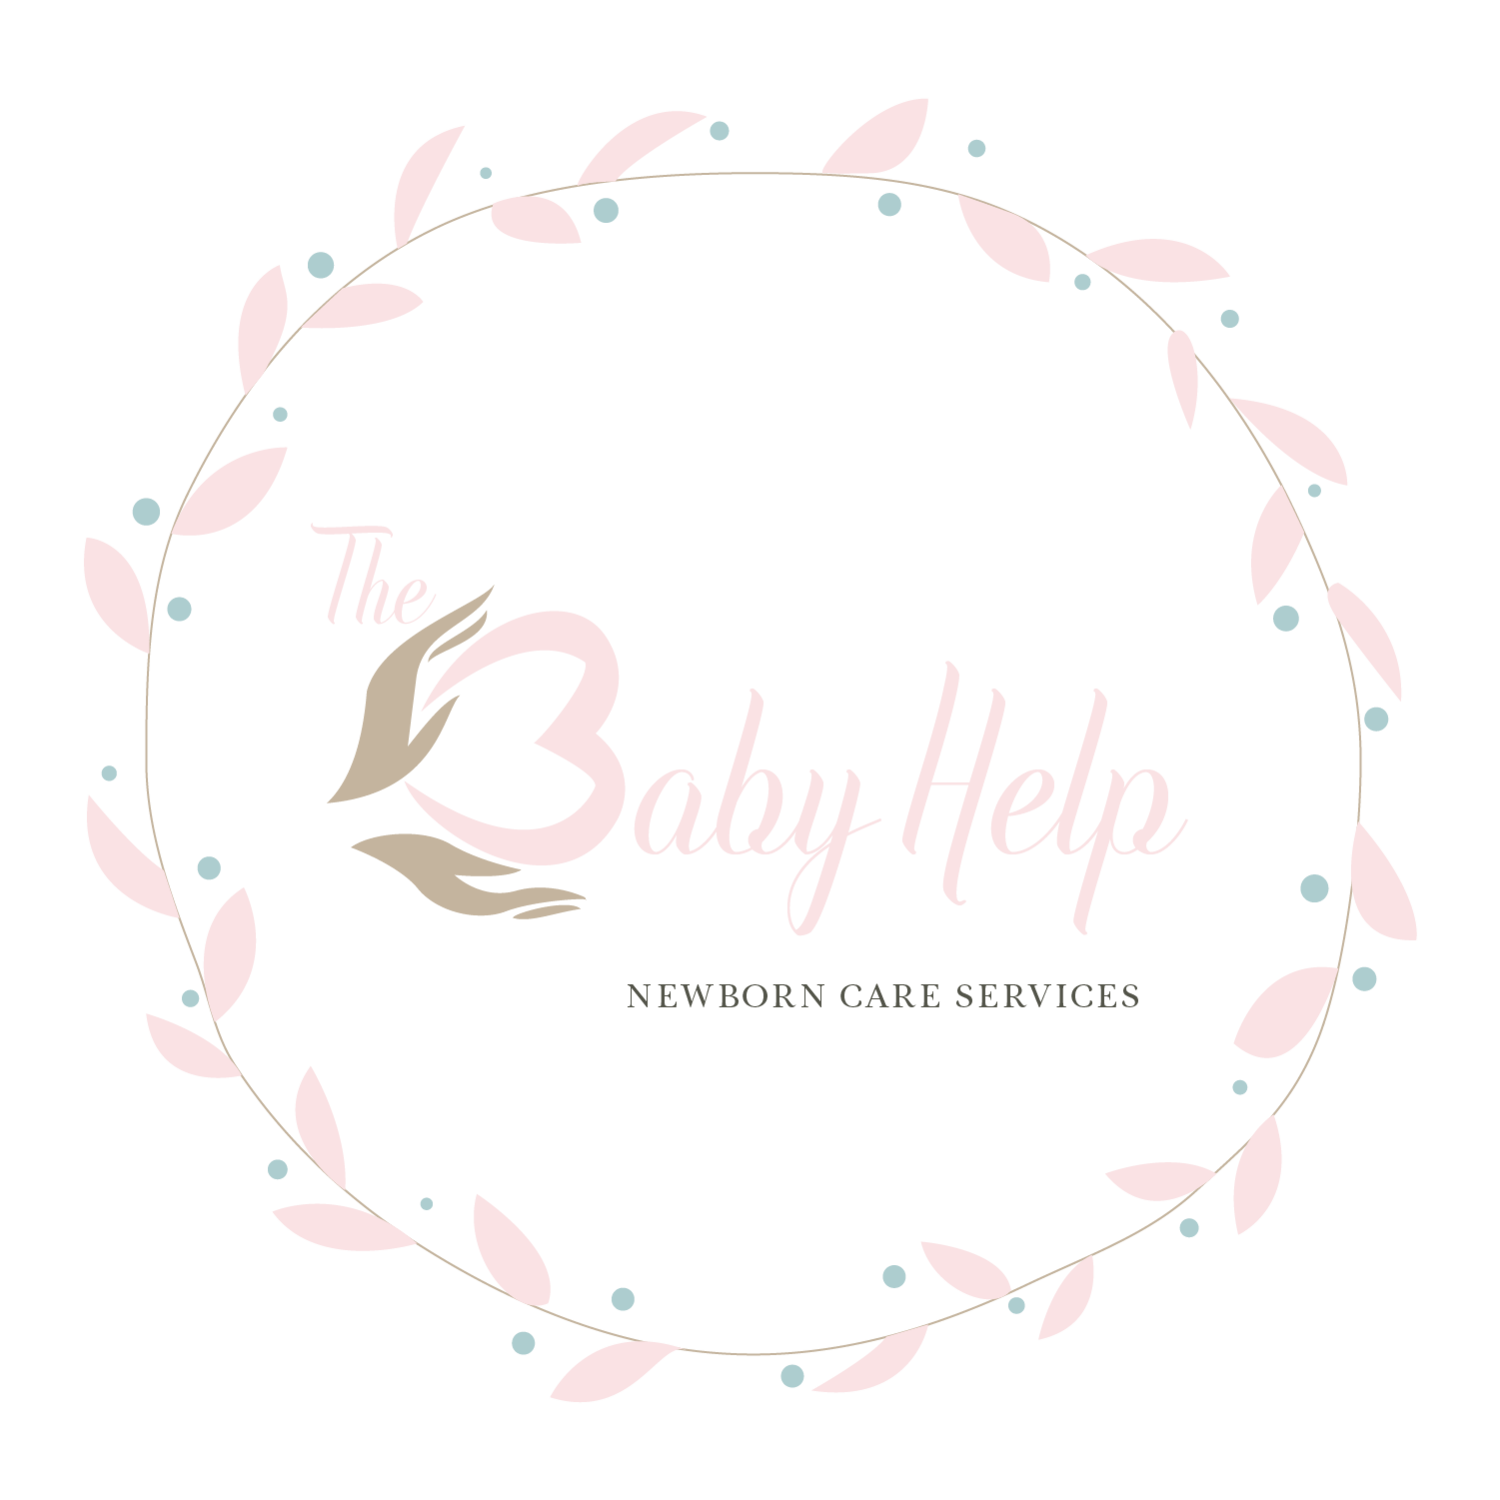 The Baby Help Newborn Care Services